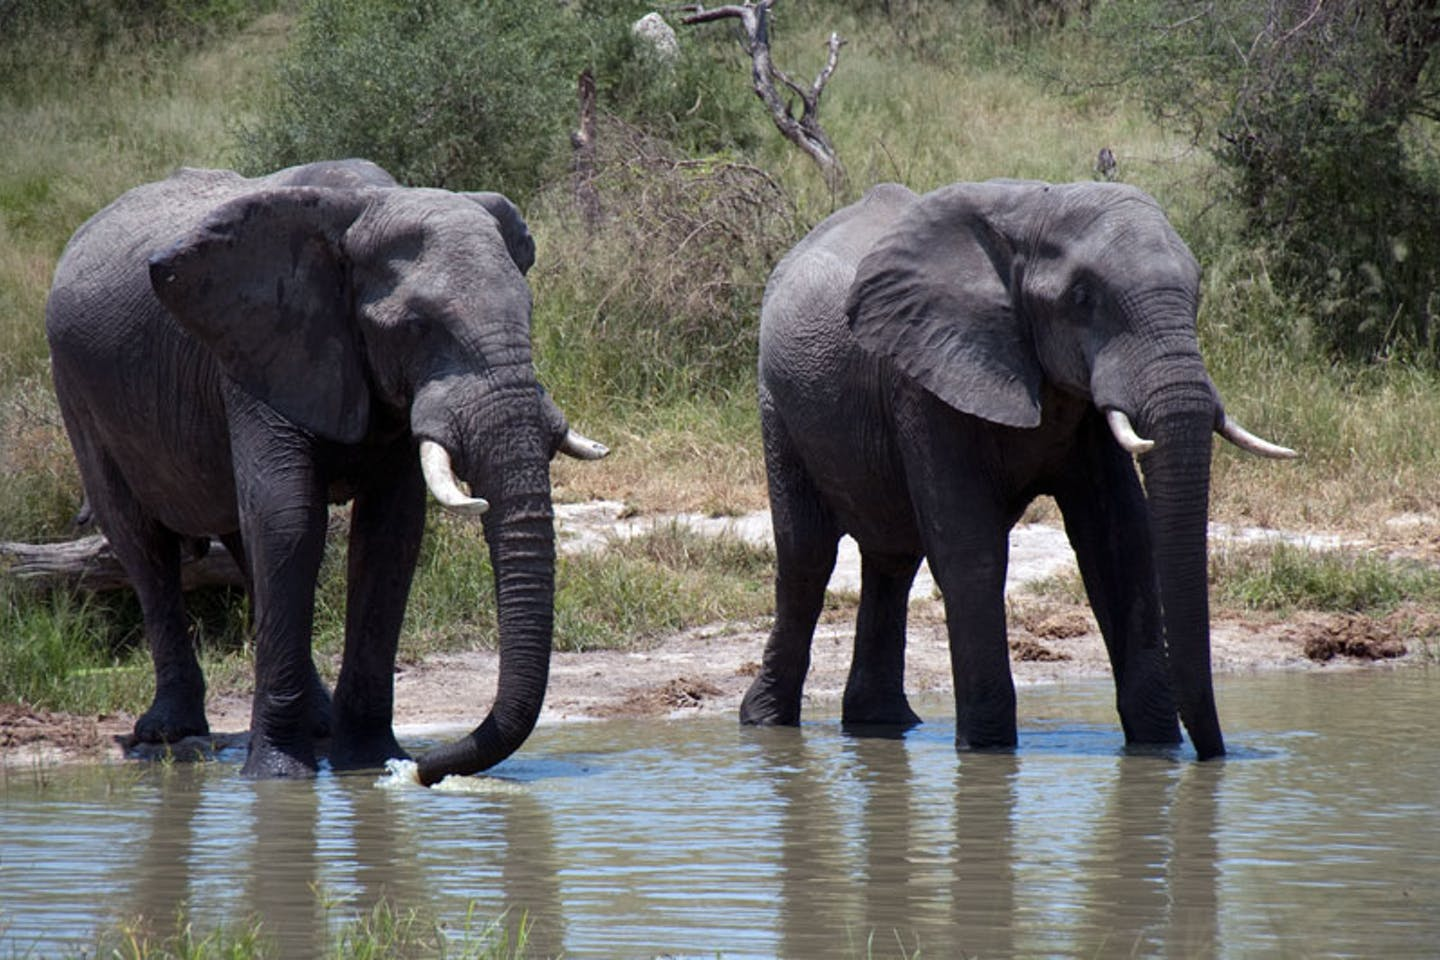 Elephants in Botswana, South Africa